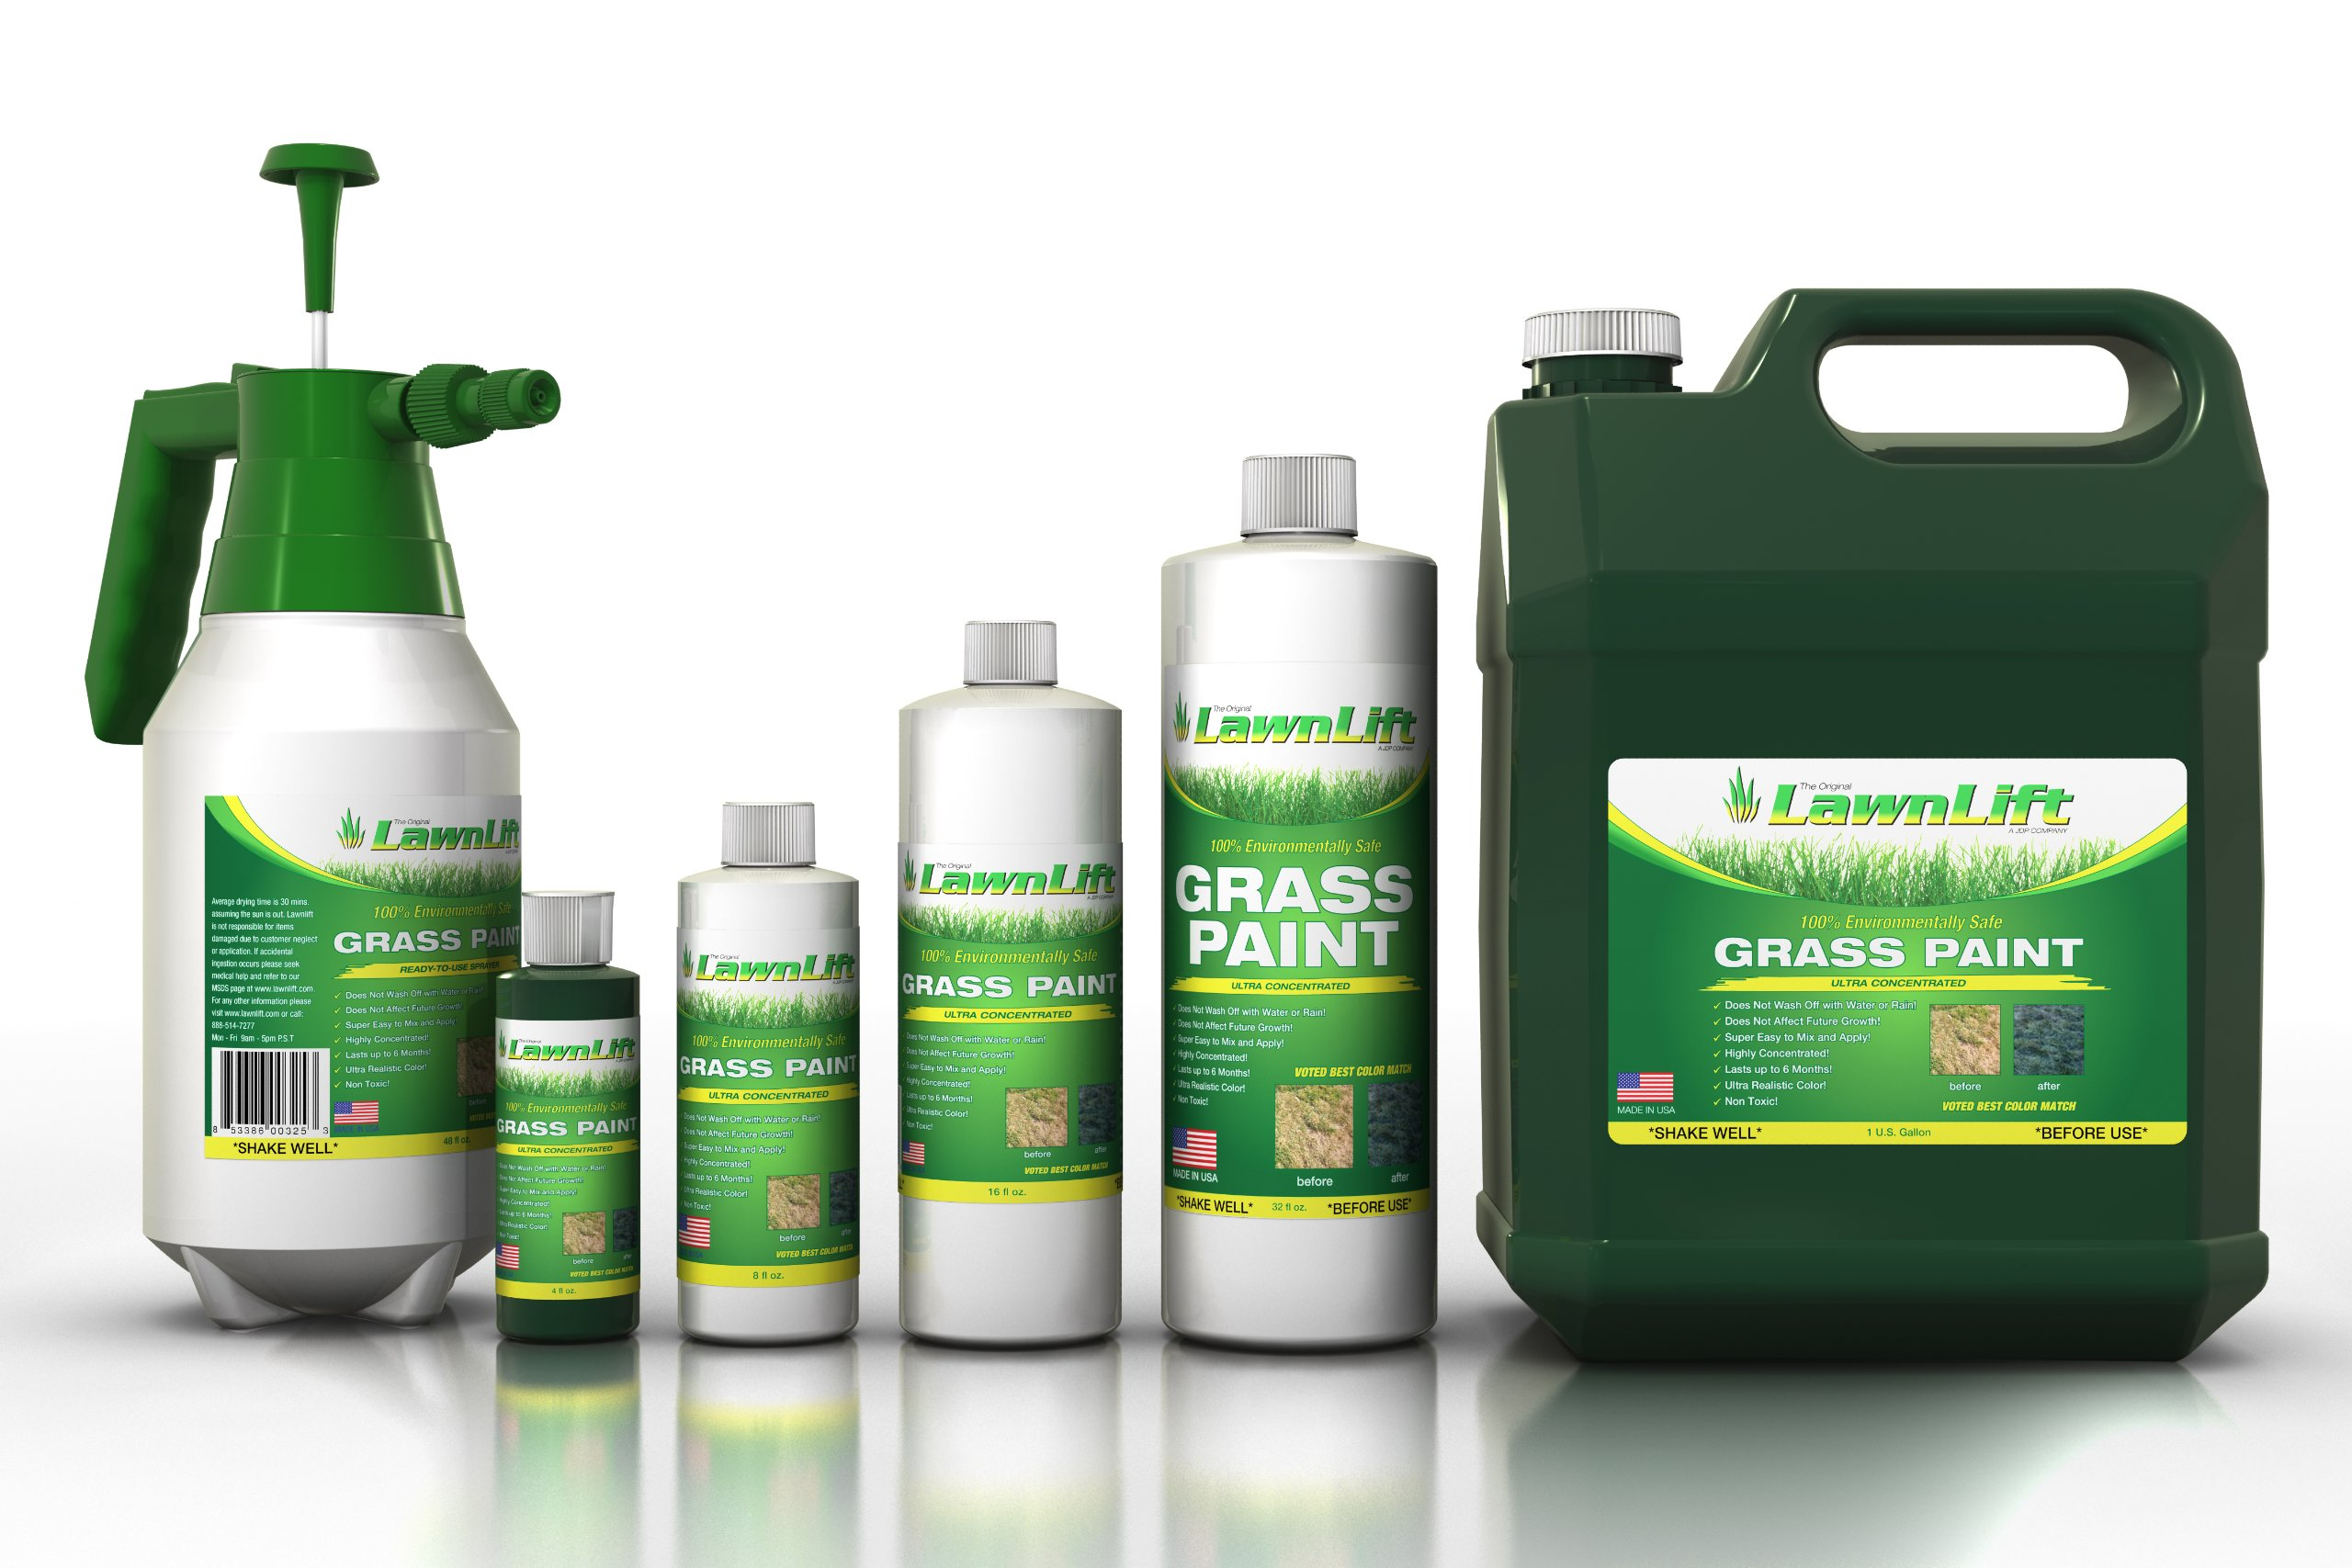 Lawnlift Ultra Concentrated (White) Grass Paint 16oz. = 1.375 Gallons of Product.